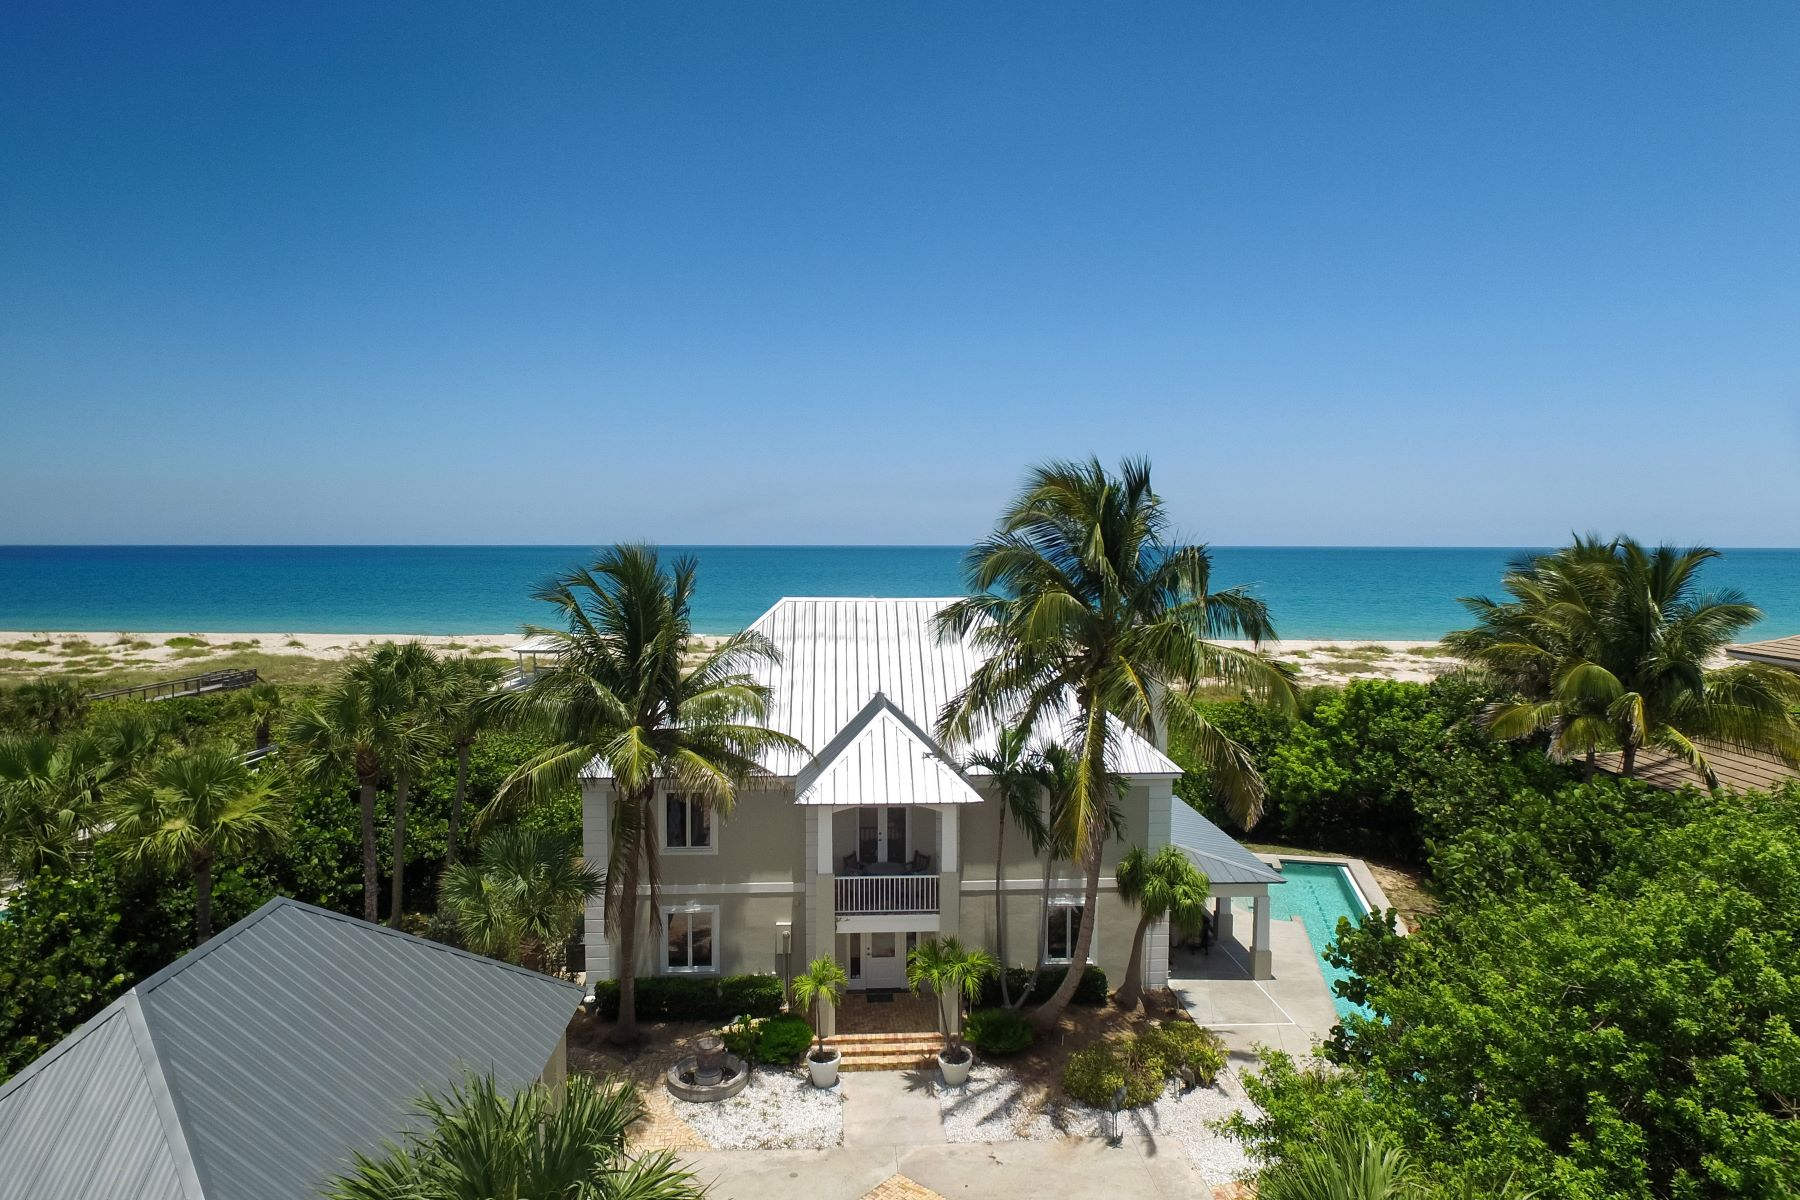 Single Family Home for Sale at Oceanfront Estate Home 820 Crescent Beach Road Vero Beach, Florida 32963 United States